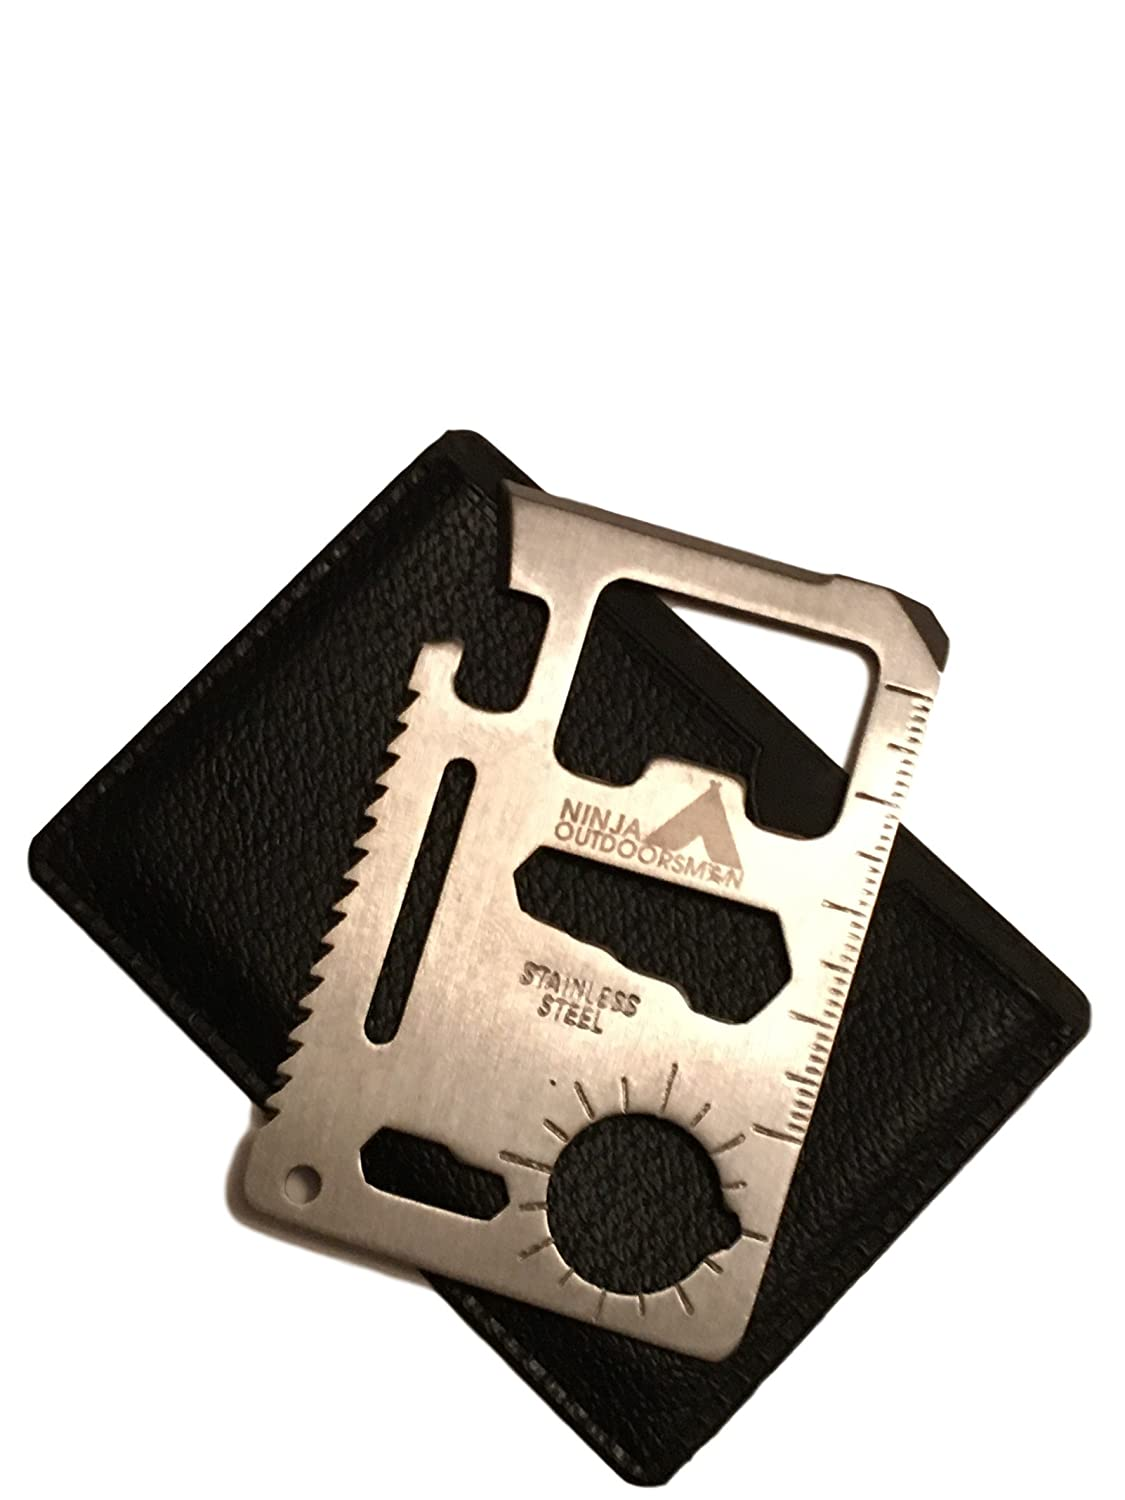 ninja outdoorsman 11 in 1 stainless steel credit card pocket sized